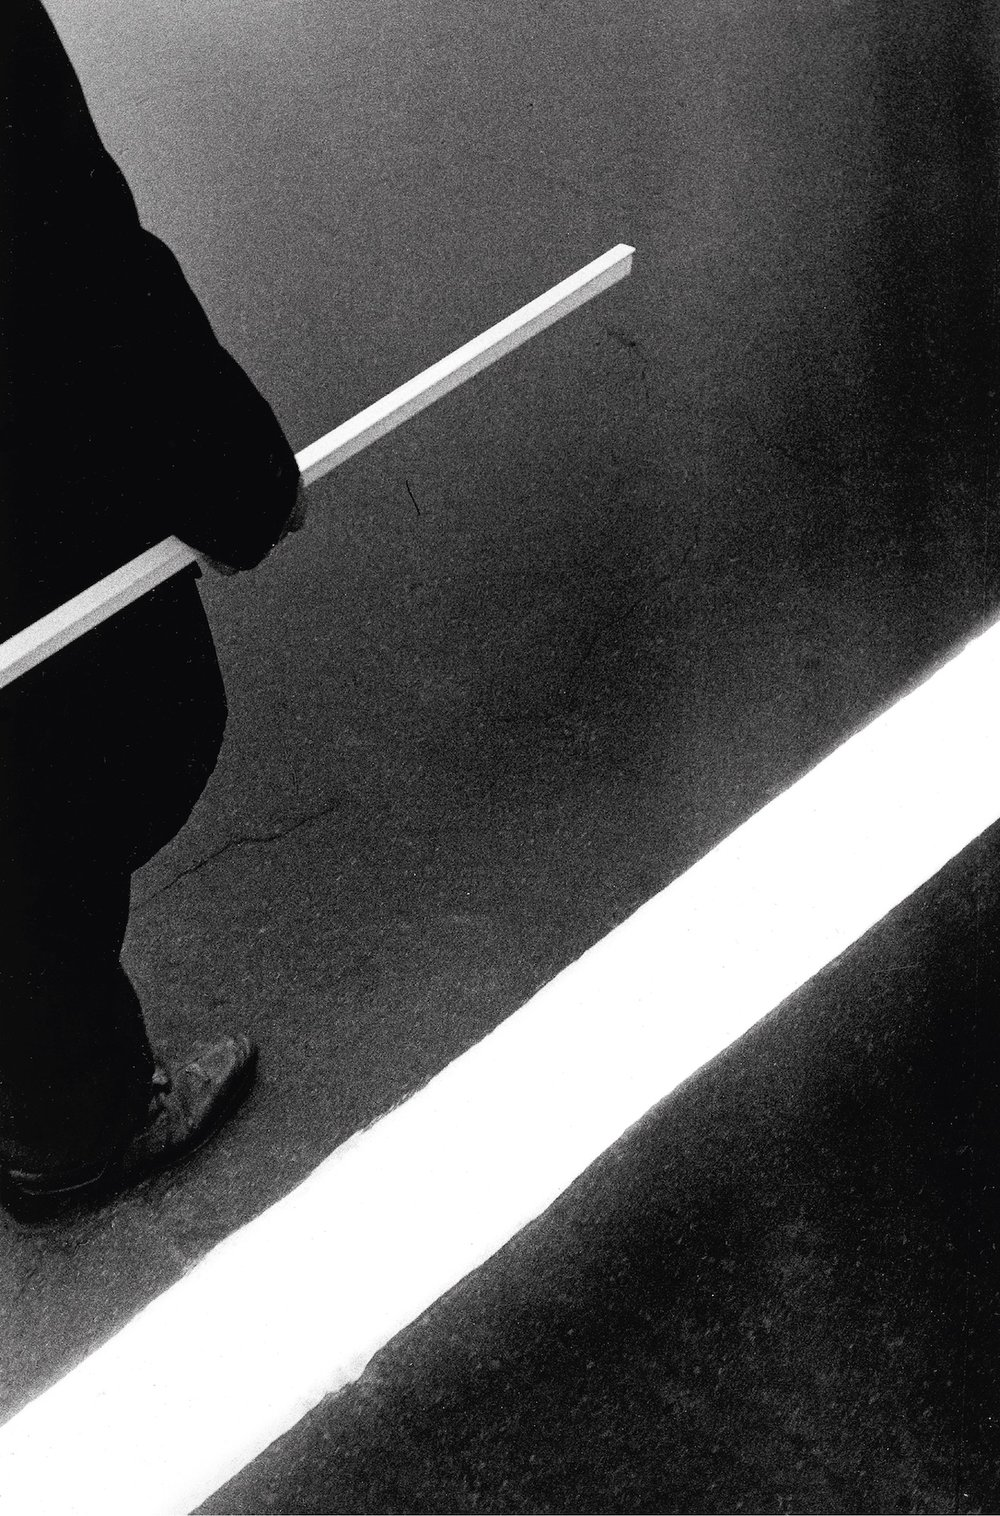 Copy of Ralph Gibson, The Perfect Future